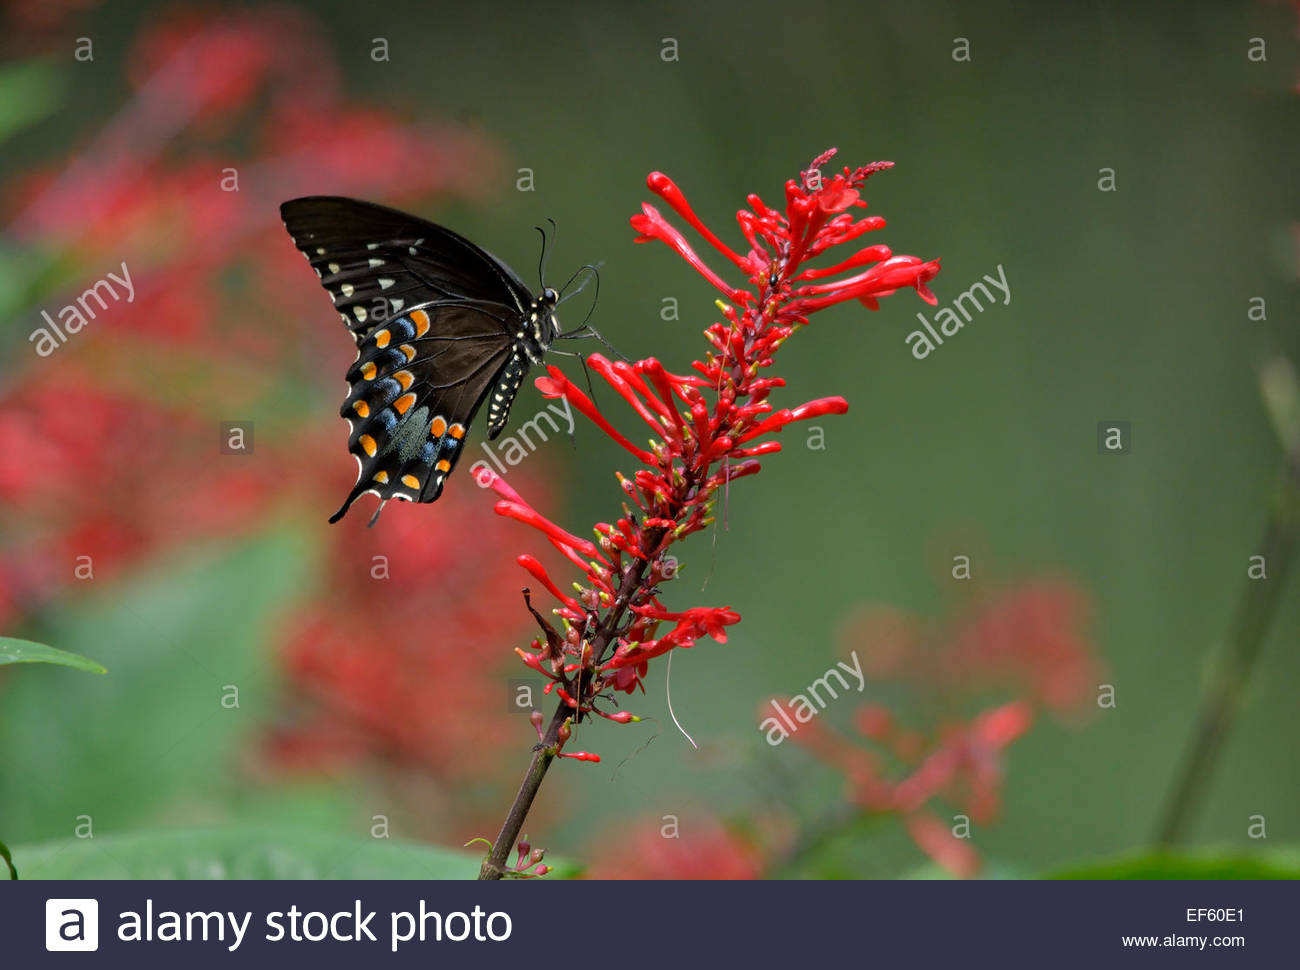 Black Swallowtail Butterfly On A Red Fire Spike Plant With A Green And Red  Background